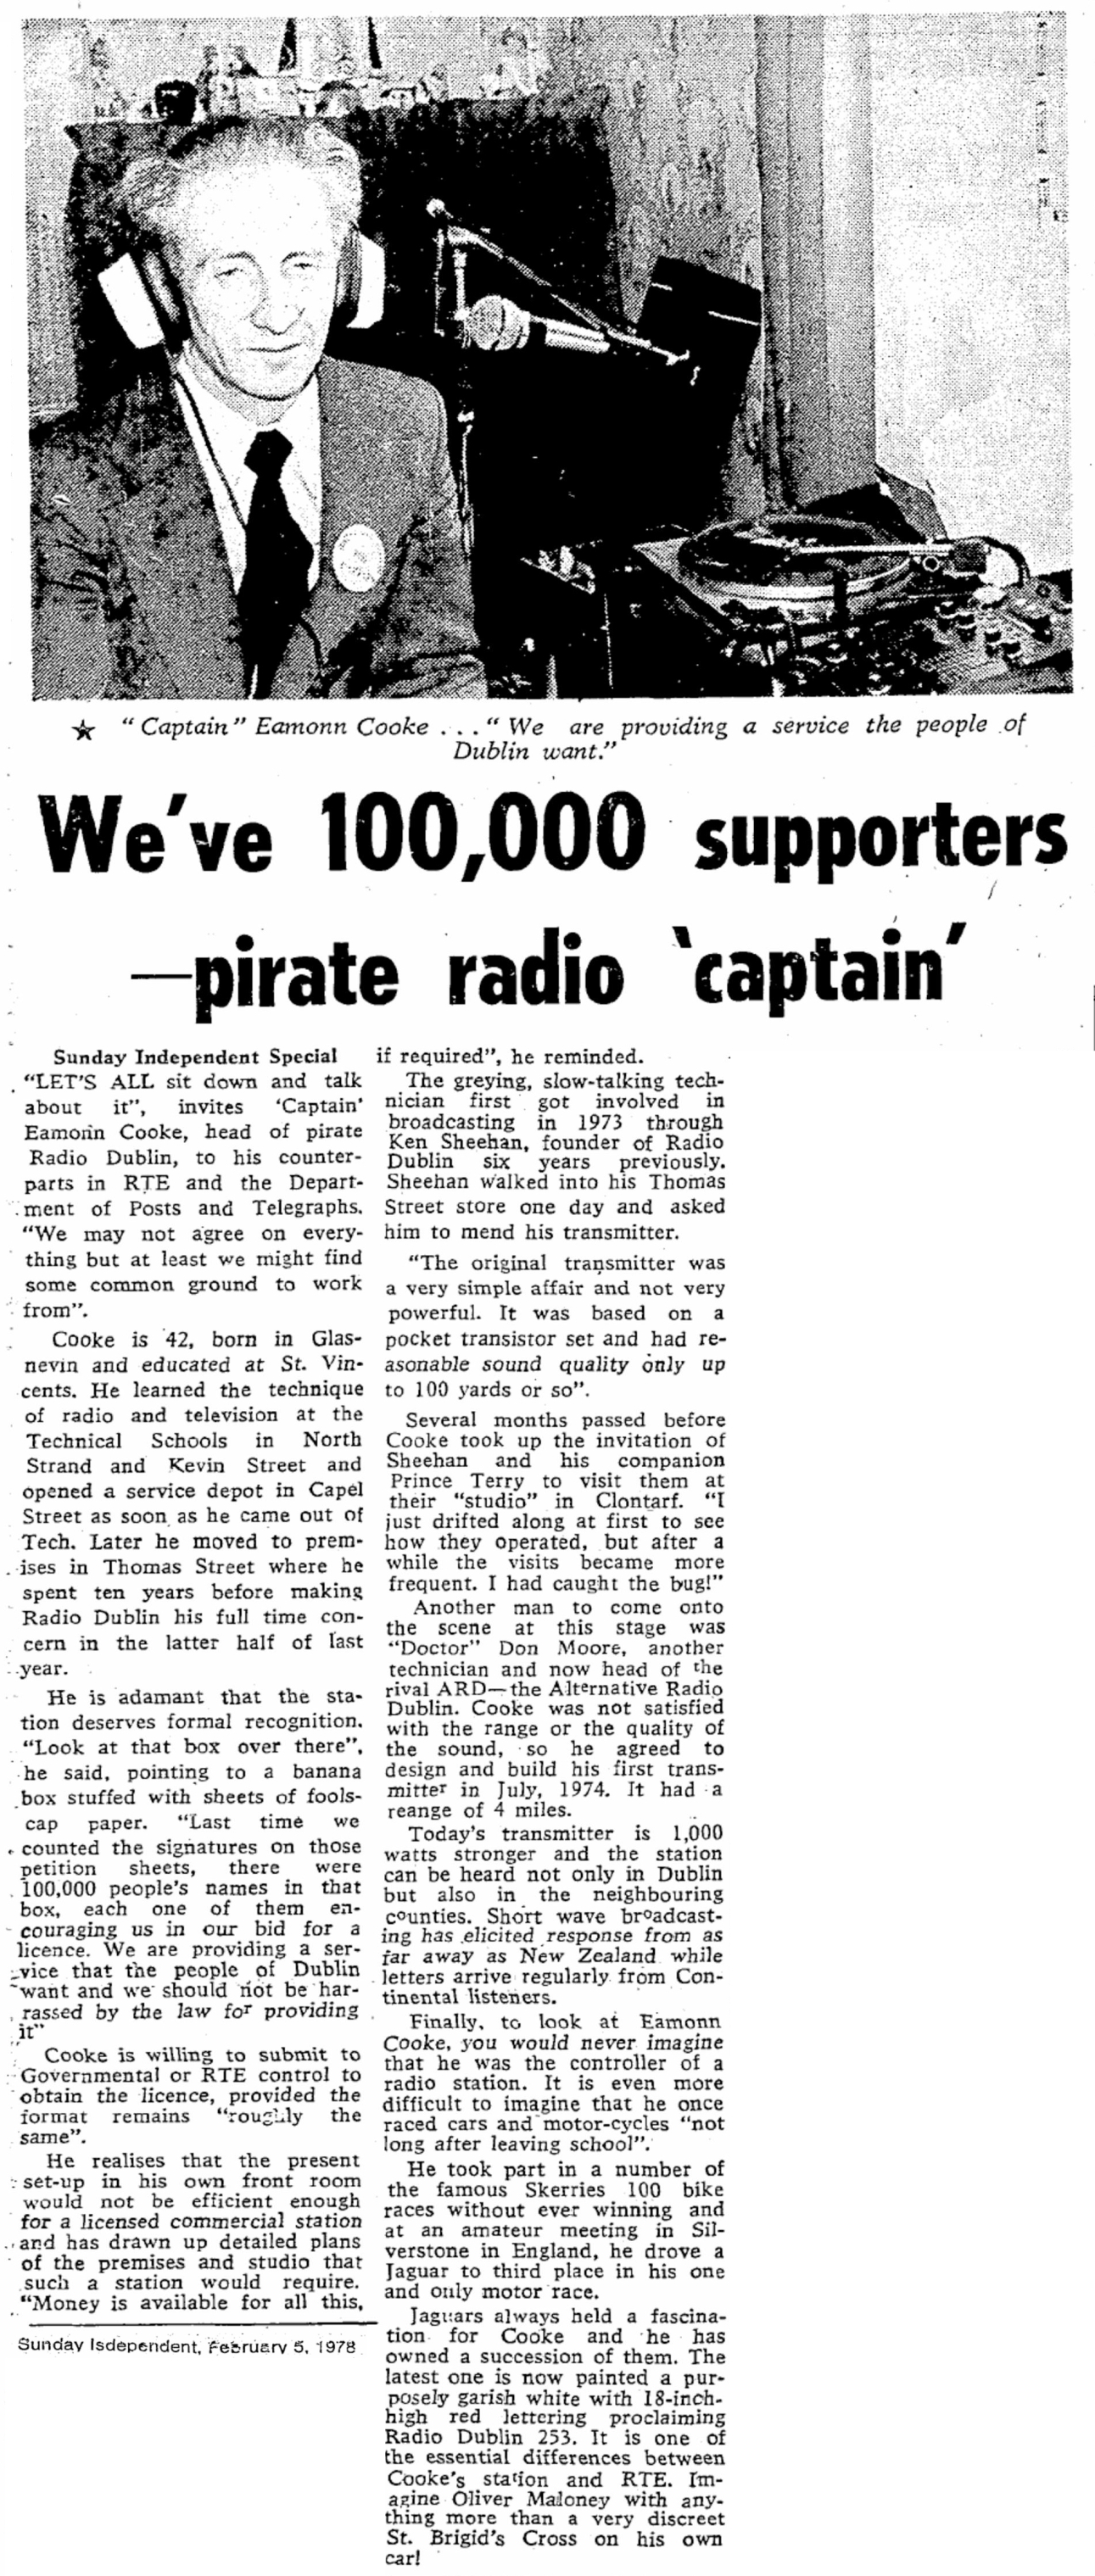 We've 100,000 supporters - pirate radio captain was a newspaper headline from The Sunday Independent dated February 5th 1978